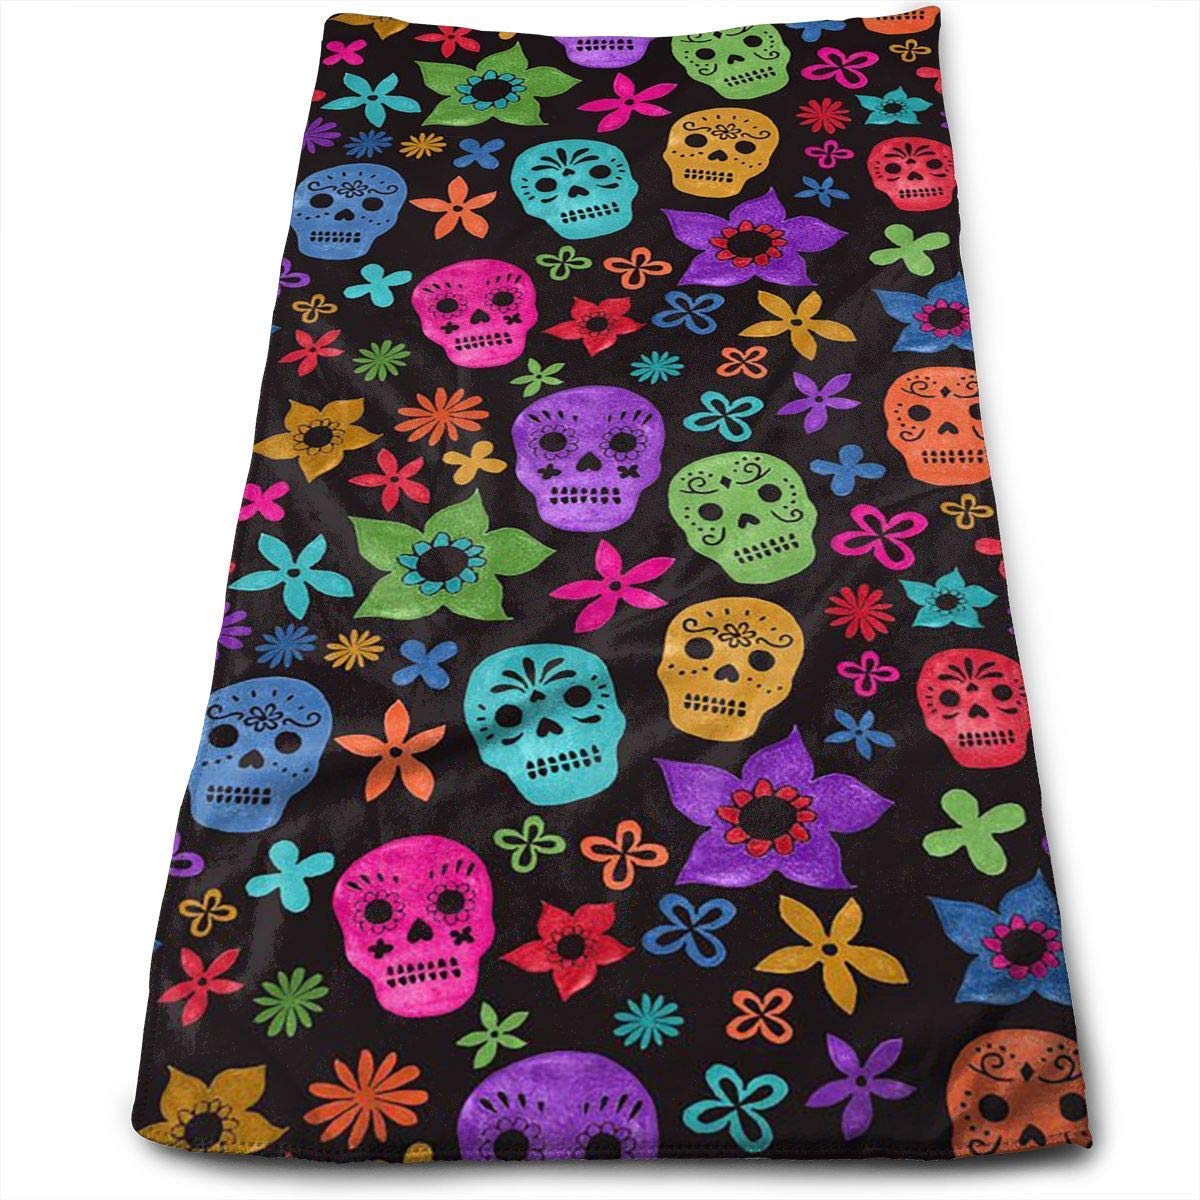 """WCMBY 2019 New Bath Towels Halloween Wallpaper Skull Face Towels Highly Absorbent Washcloths Multipurpose Towels for Hand Face Gym and Spa 12"""" X 27.5"""""""